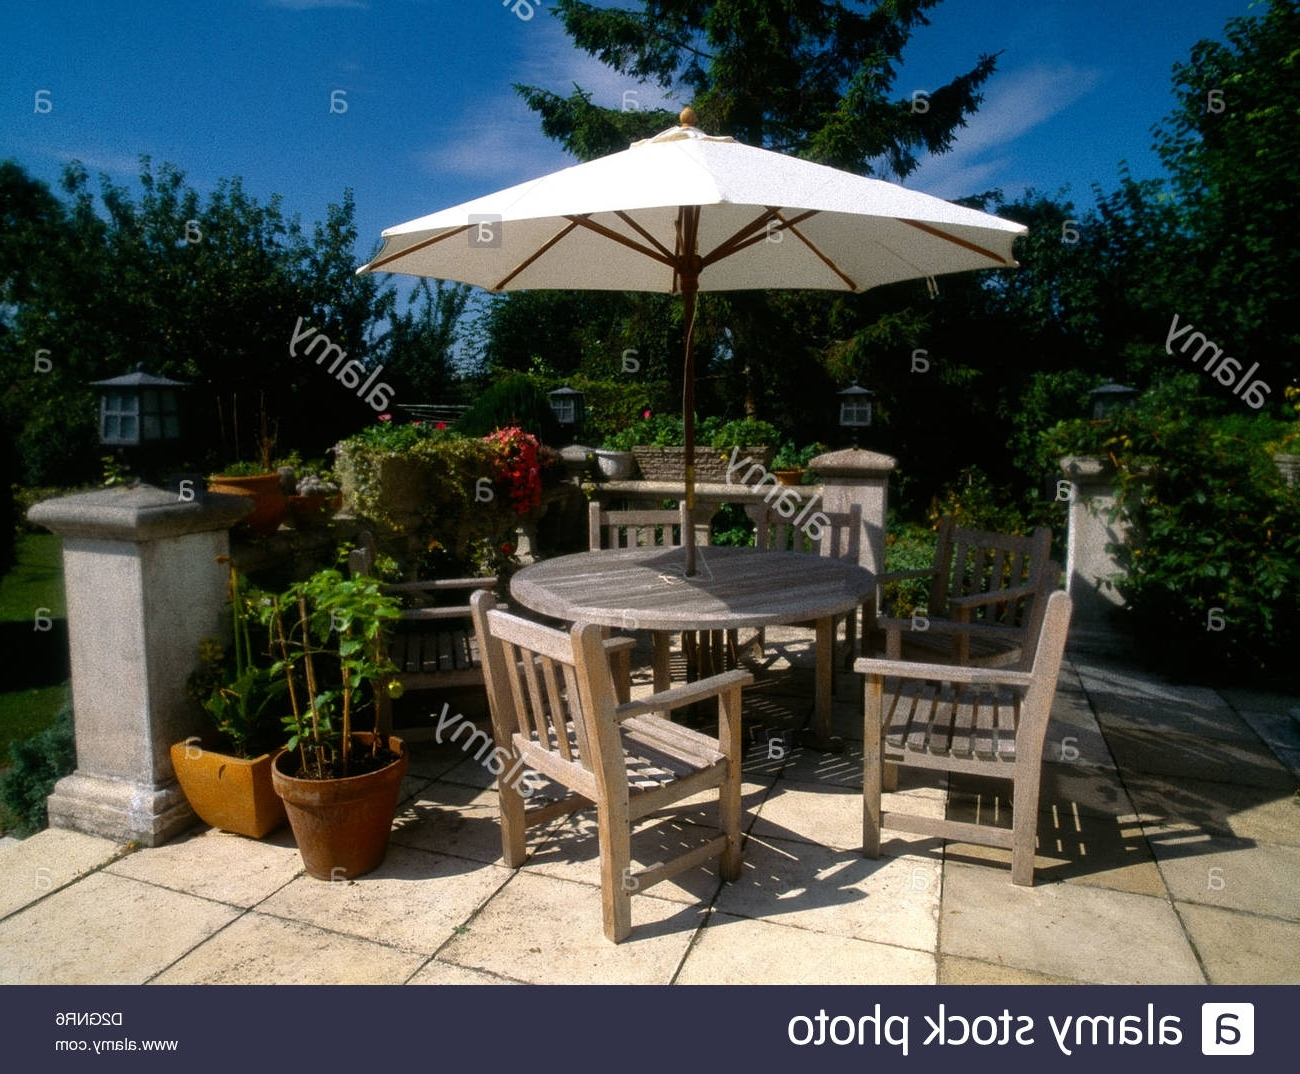 2018 Patio Table And Chairs With Umbrellas Pertaining To Wooden Garden Furniture Table & Chairs & Sun Shade Umbrella Stock (Gallery 16 of 20)